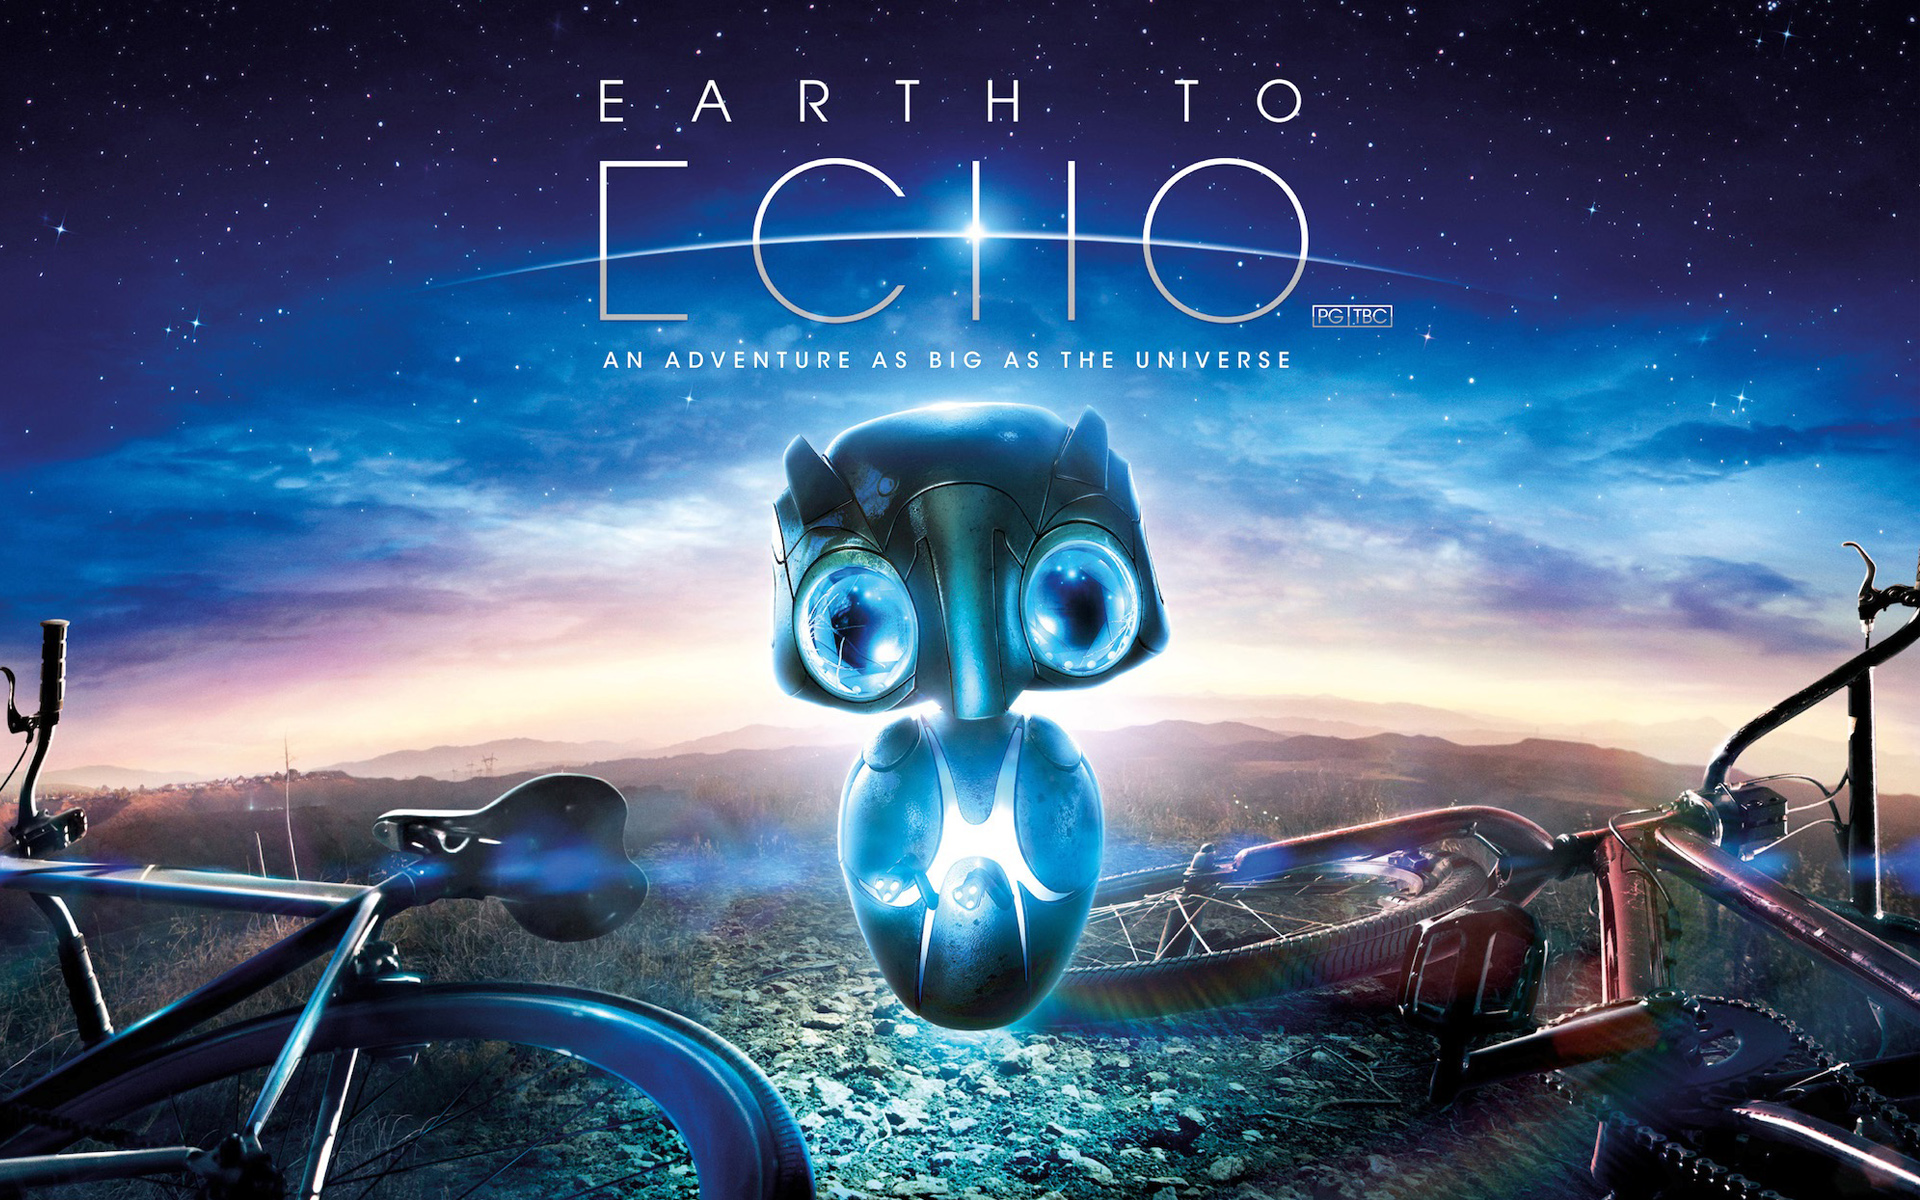 Earth to echo movie review earth to echo